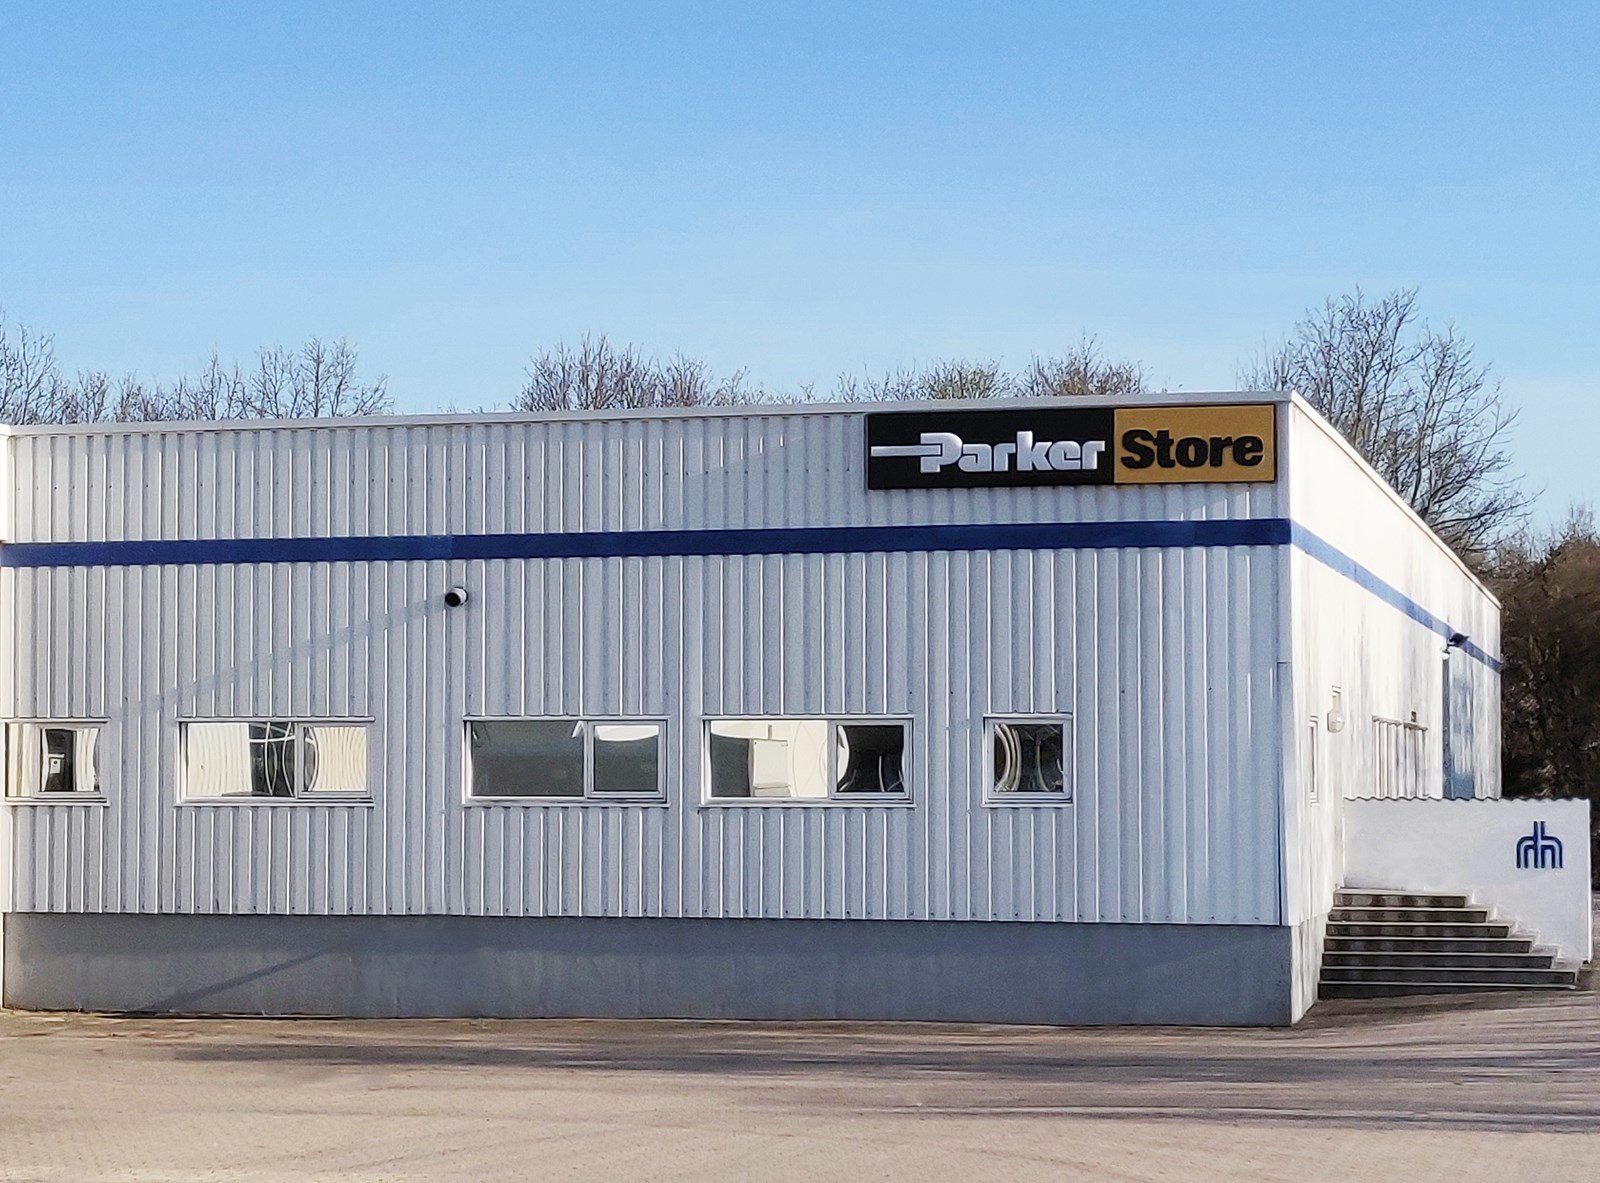 Parkerstore Odense